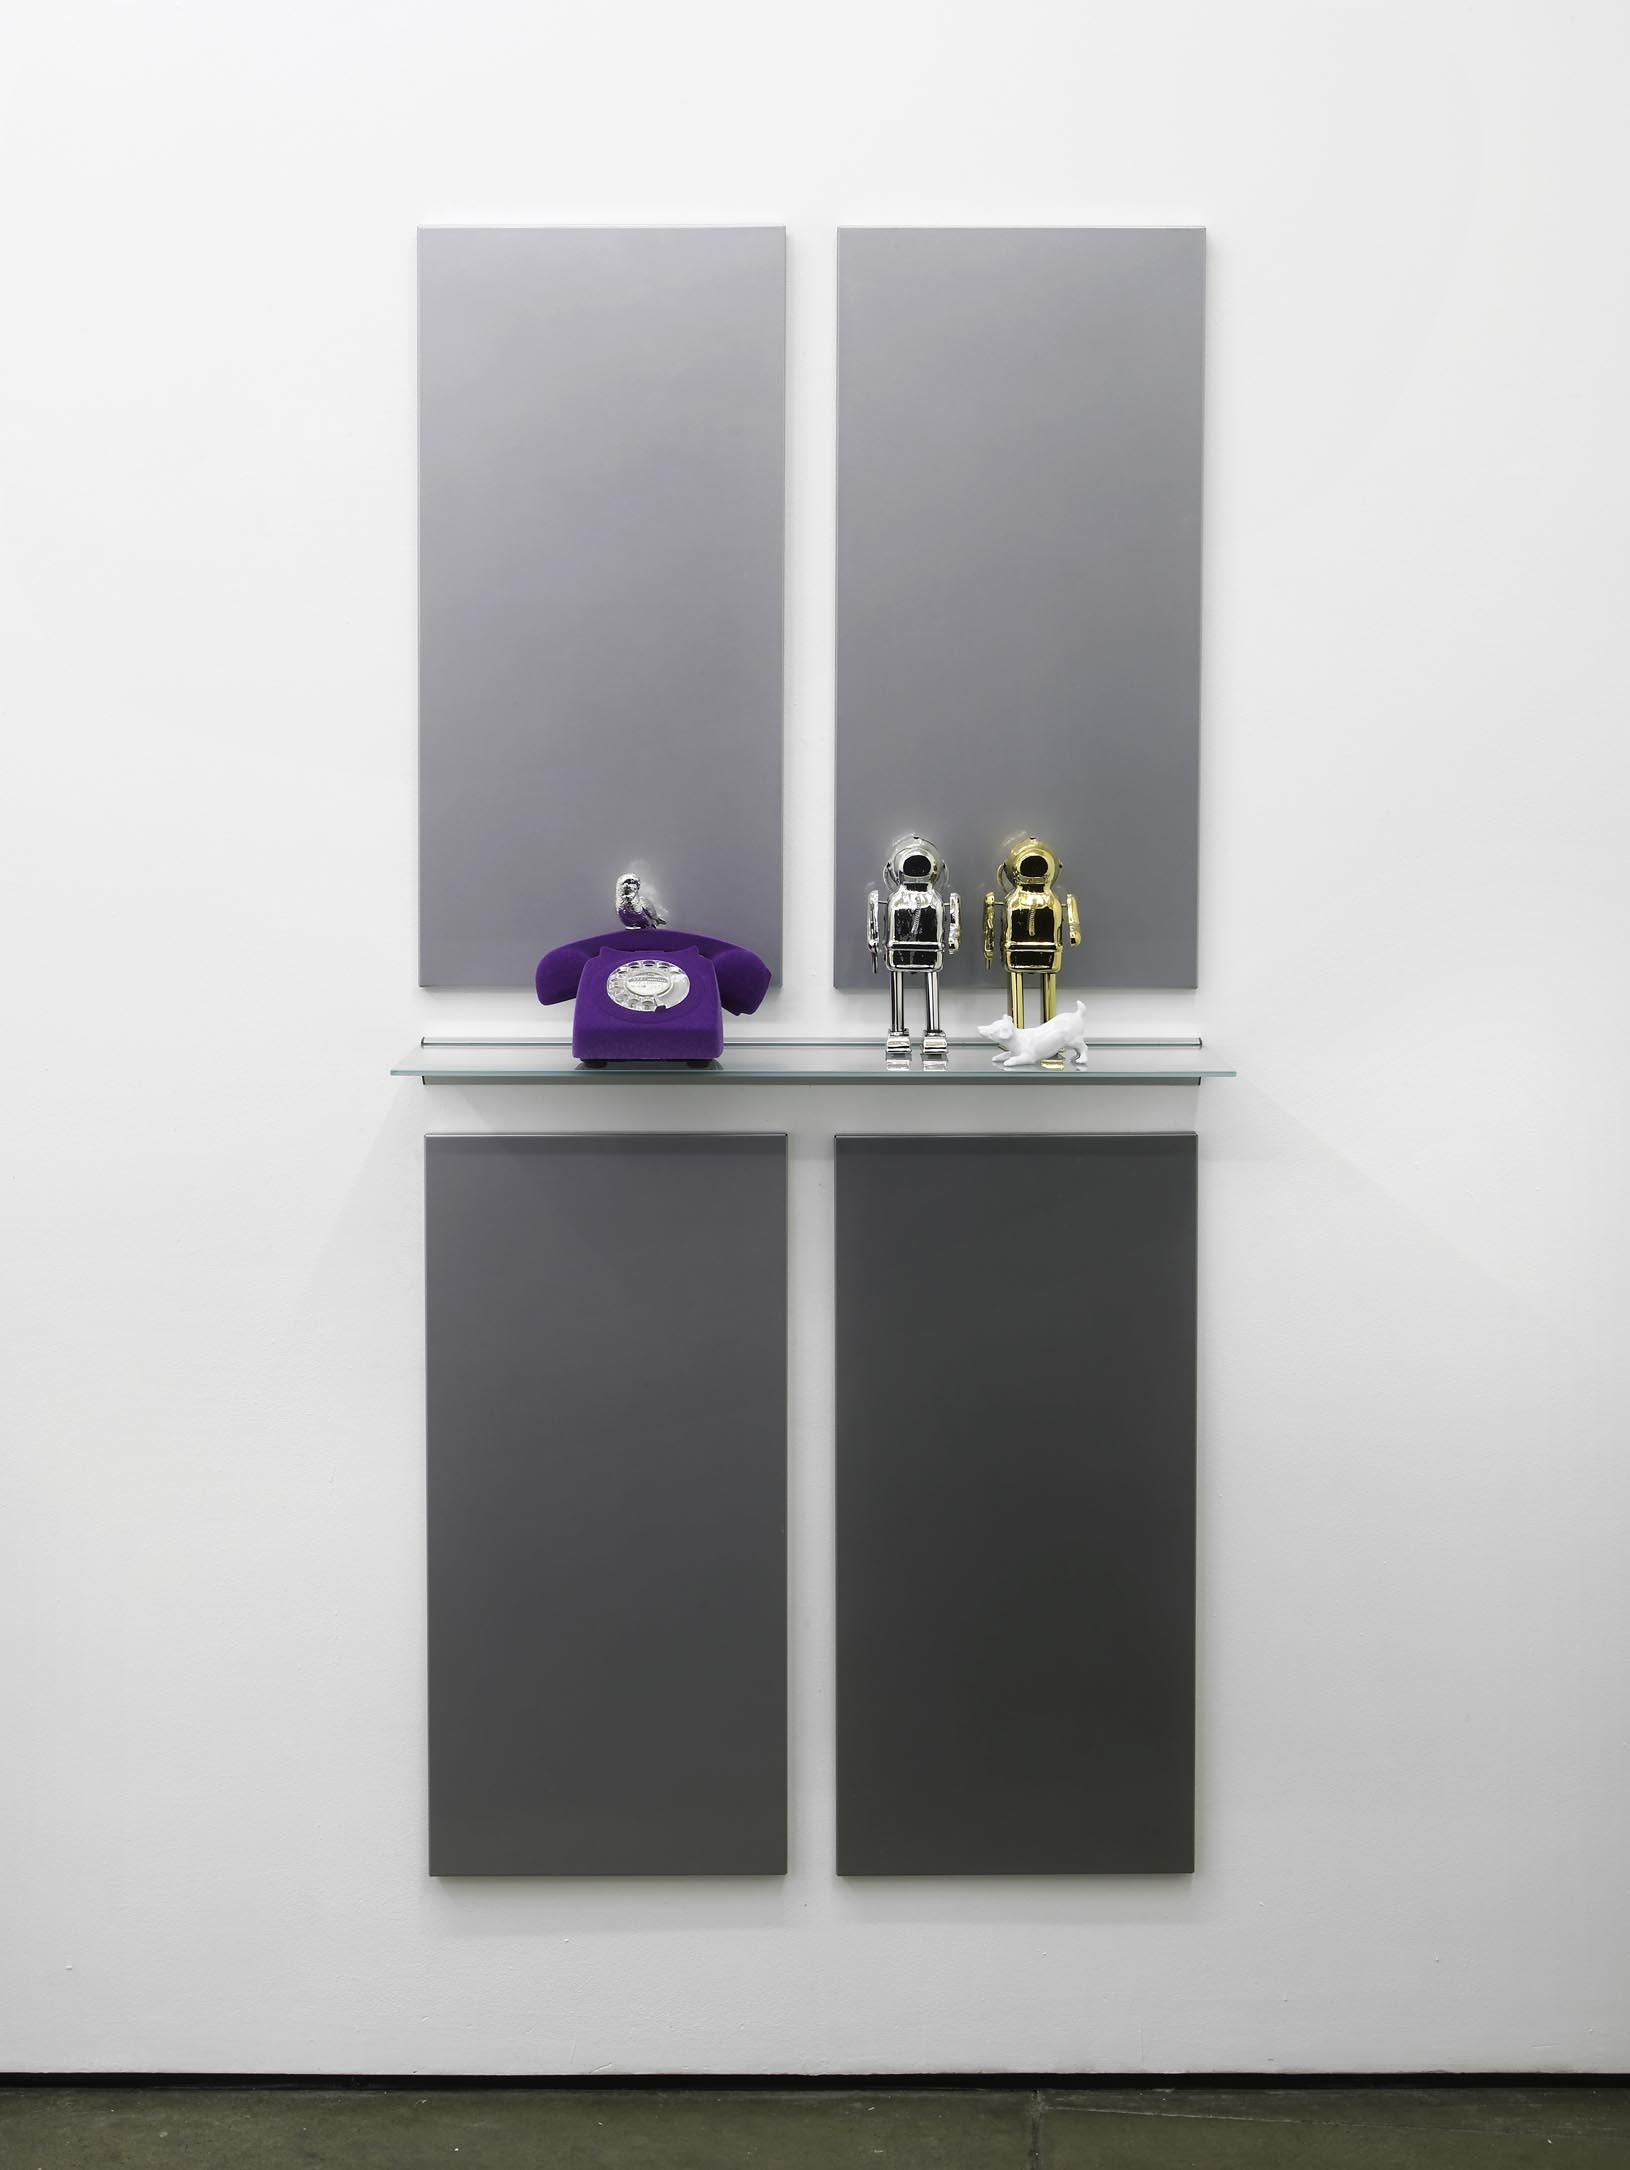 Matthew Darbyshire Untitled Homeware No. 12 2011 Chromed silver and gold toy robots, purple flocked telephone, painted white Beswick dog ornament, glass and steel support:172 x 80 x 16.5 cm